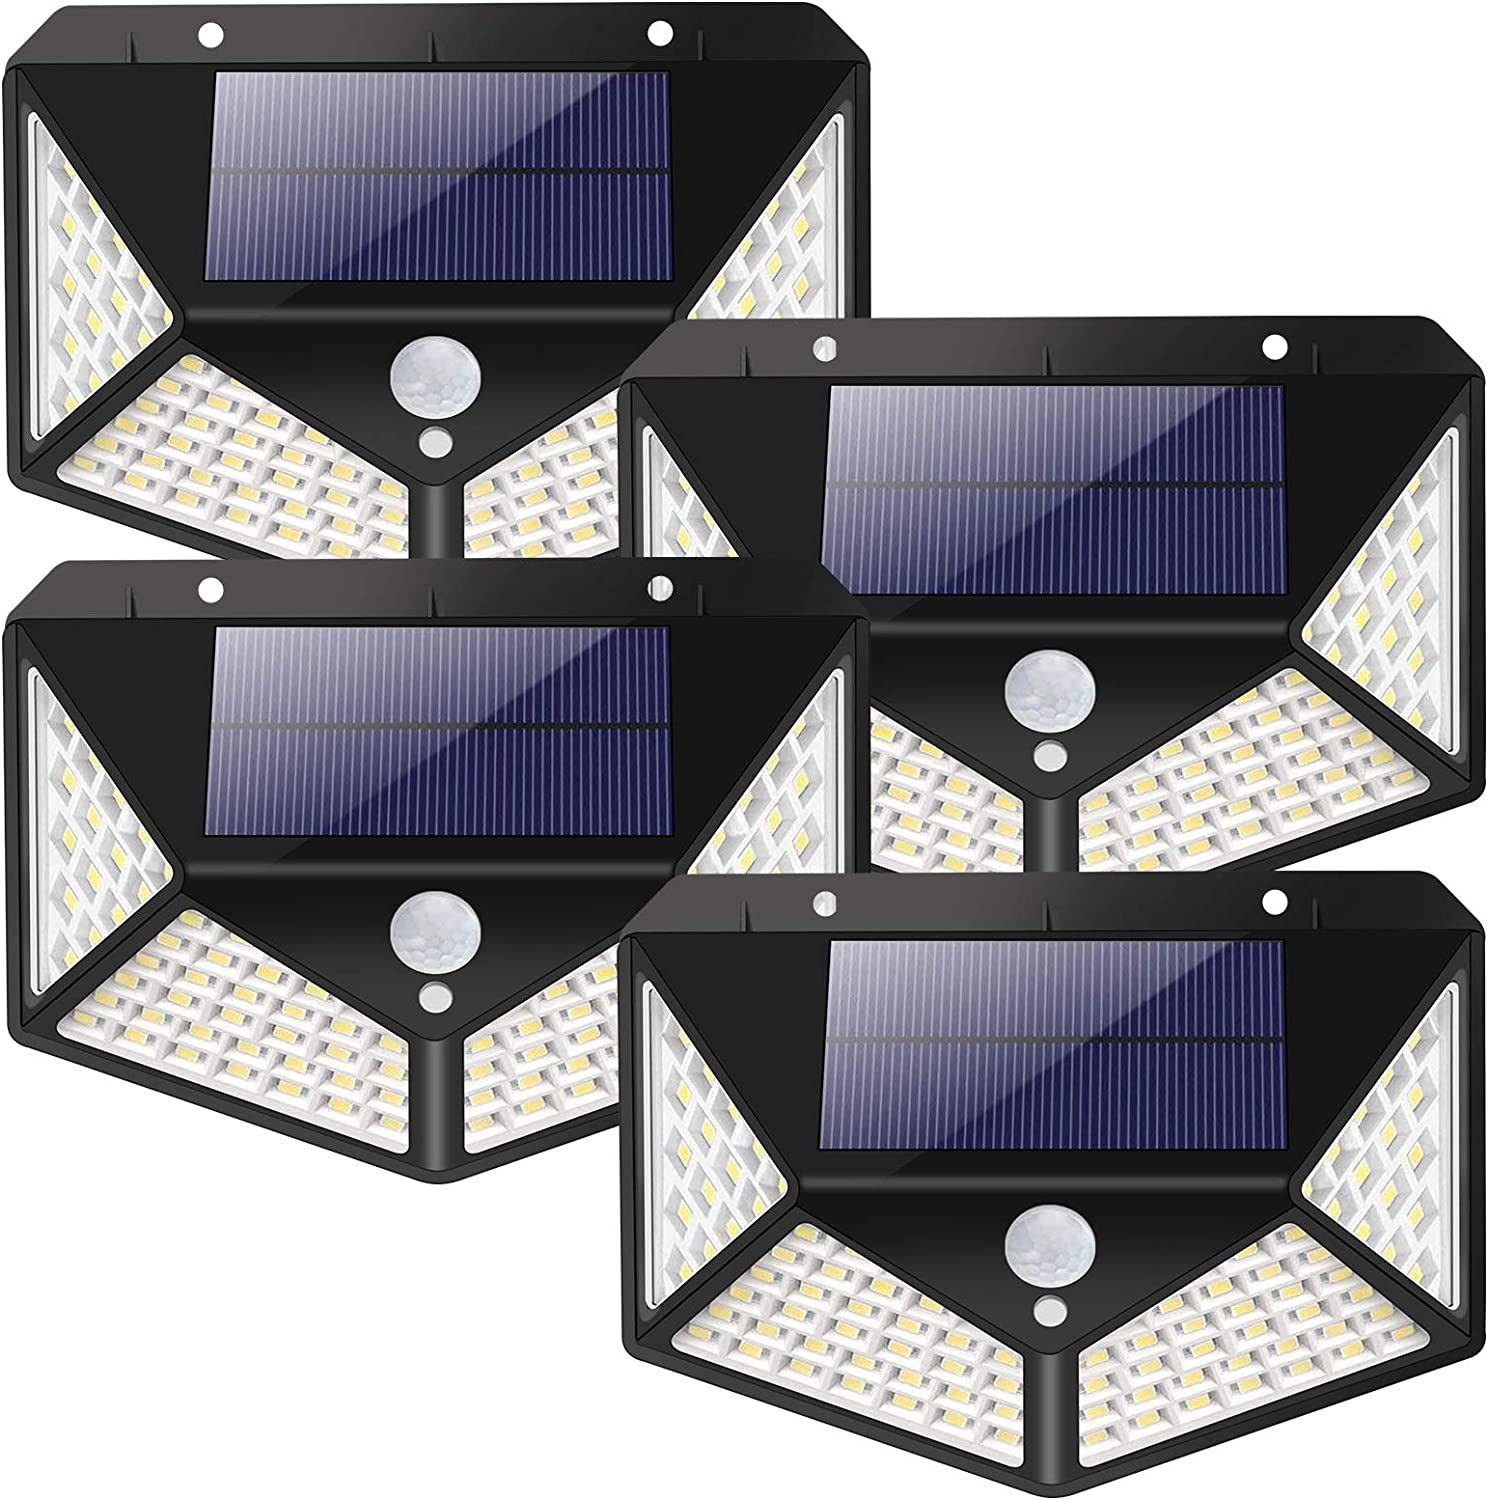 BS ONE Solar Lights Outdoor, Wireless Solar Motion Sensor Security Lights 2200mAh Battery 100 LED Solar Powered Wall Lights IP65 Waterproof 3 Lighting Modes for Garden Patio Fence Yard Garage 4 Pack